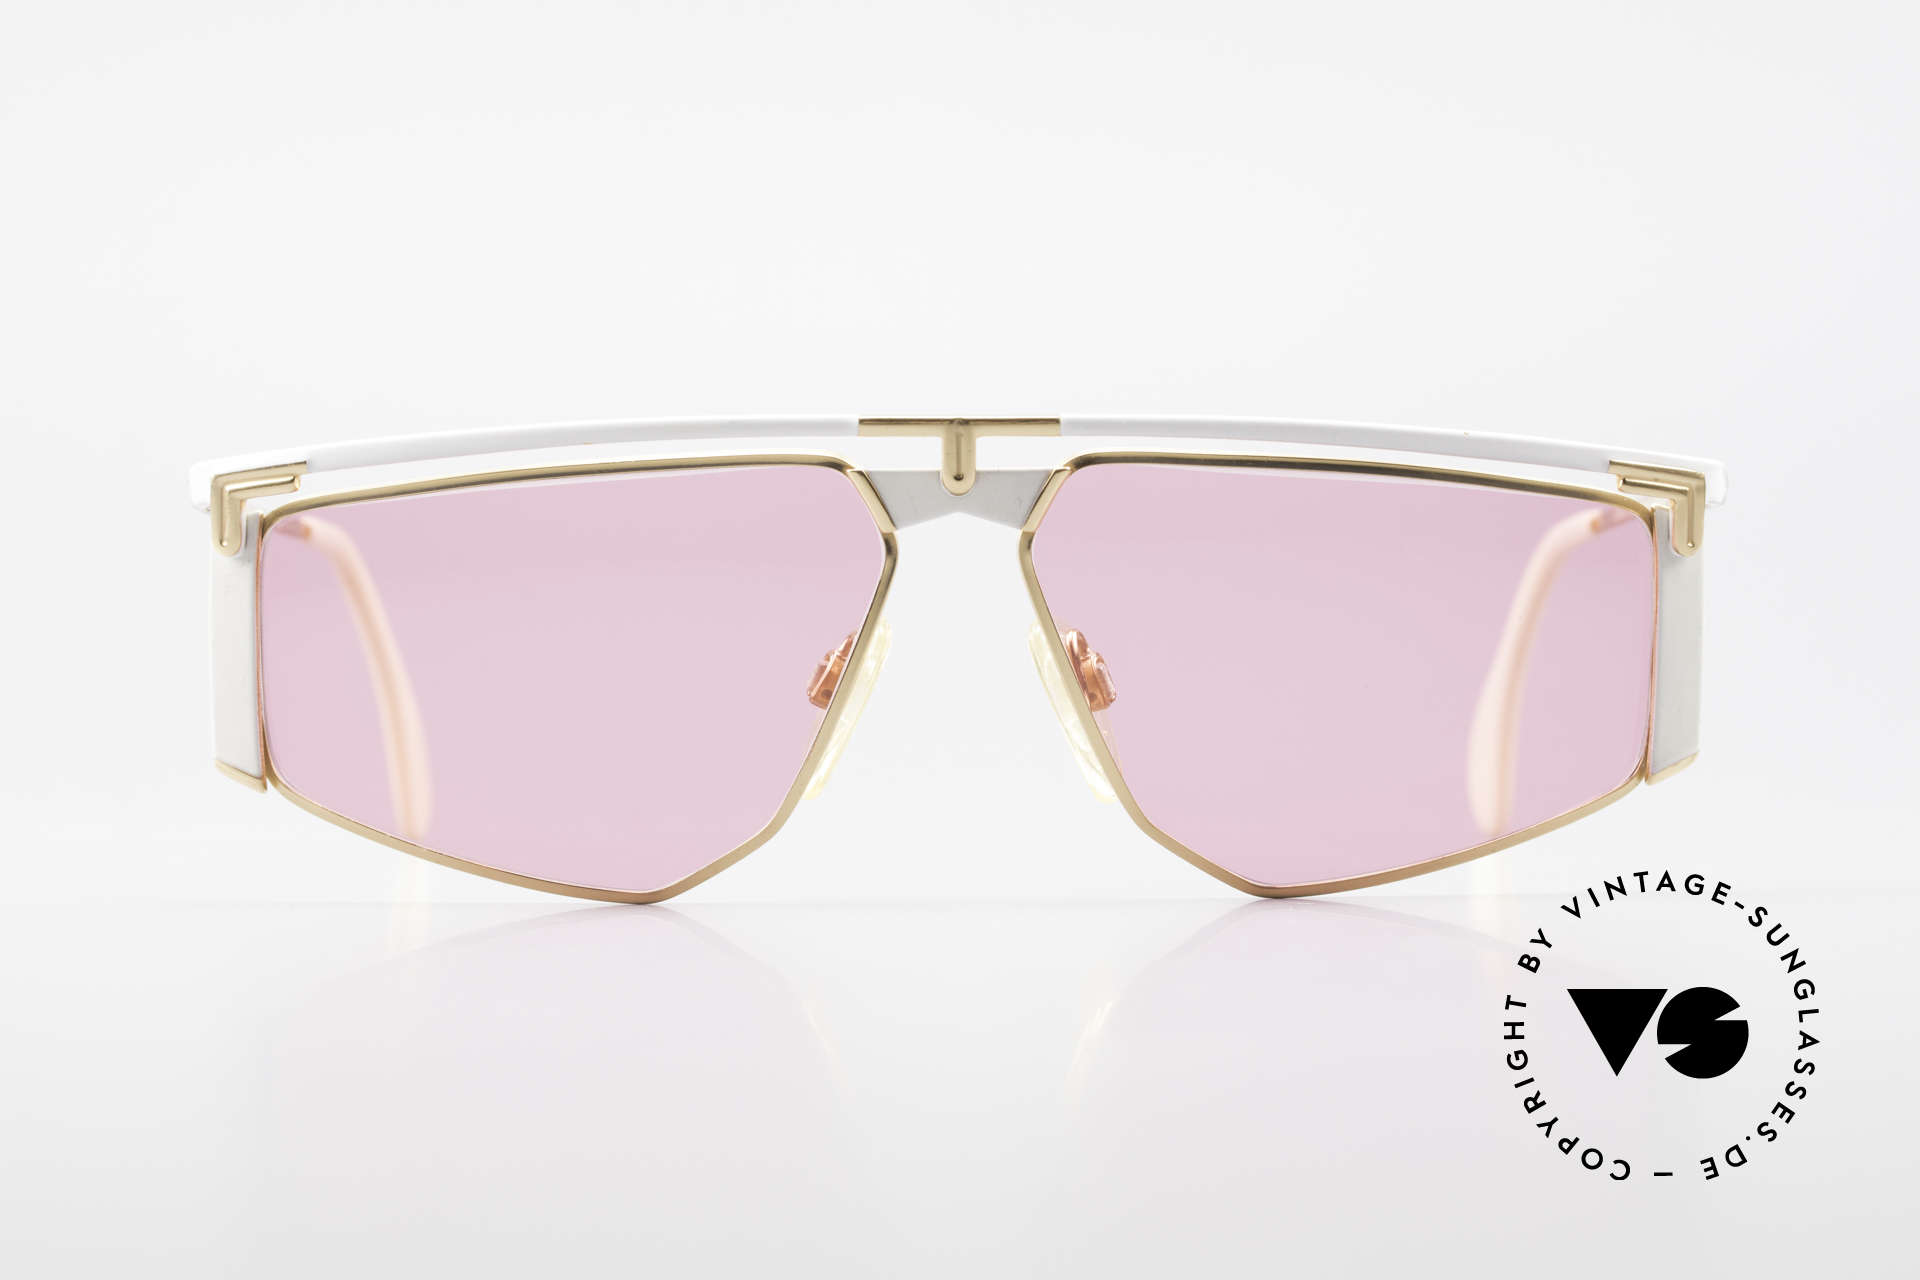 Cazal 235 Vintage Cazal Titanium Frame, 1. class wearing comfort thanks to lightweight material, Made for Men and Women